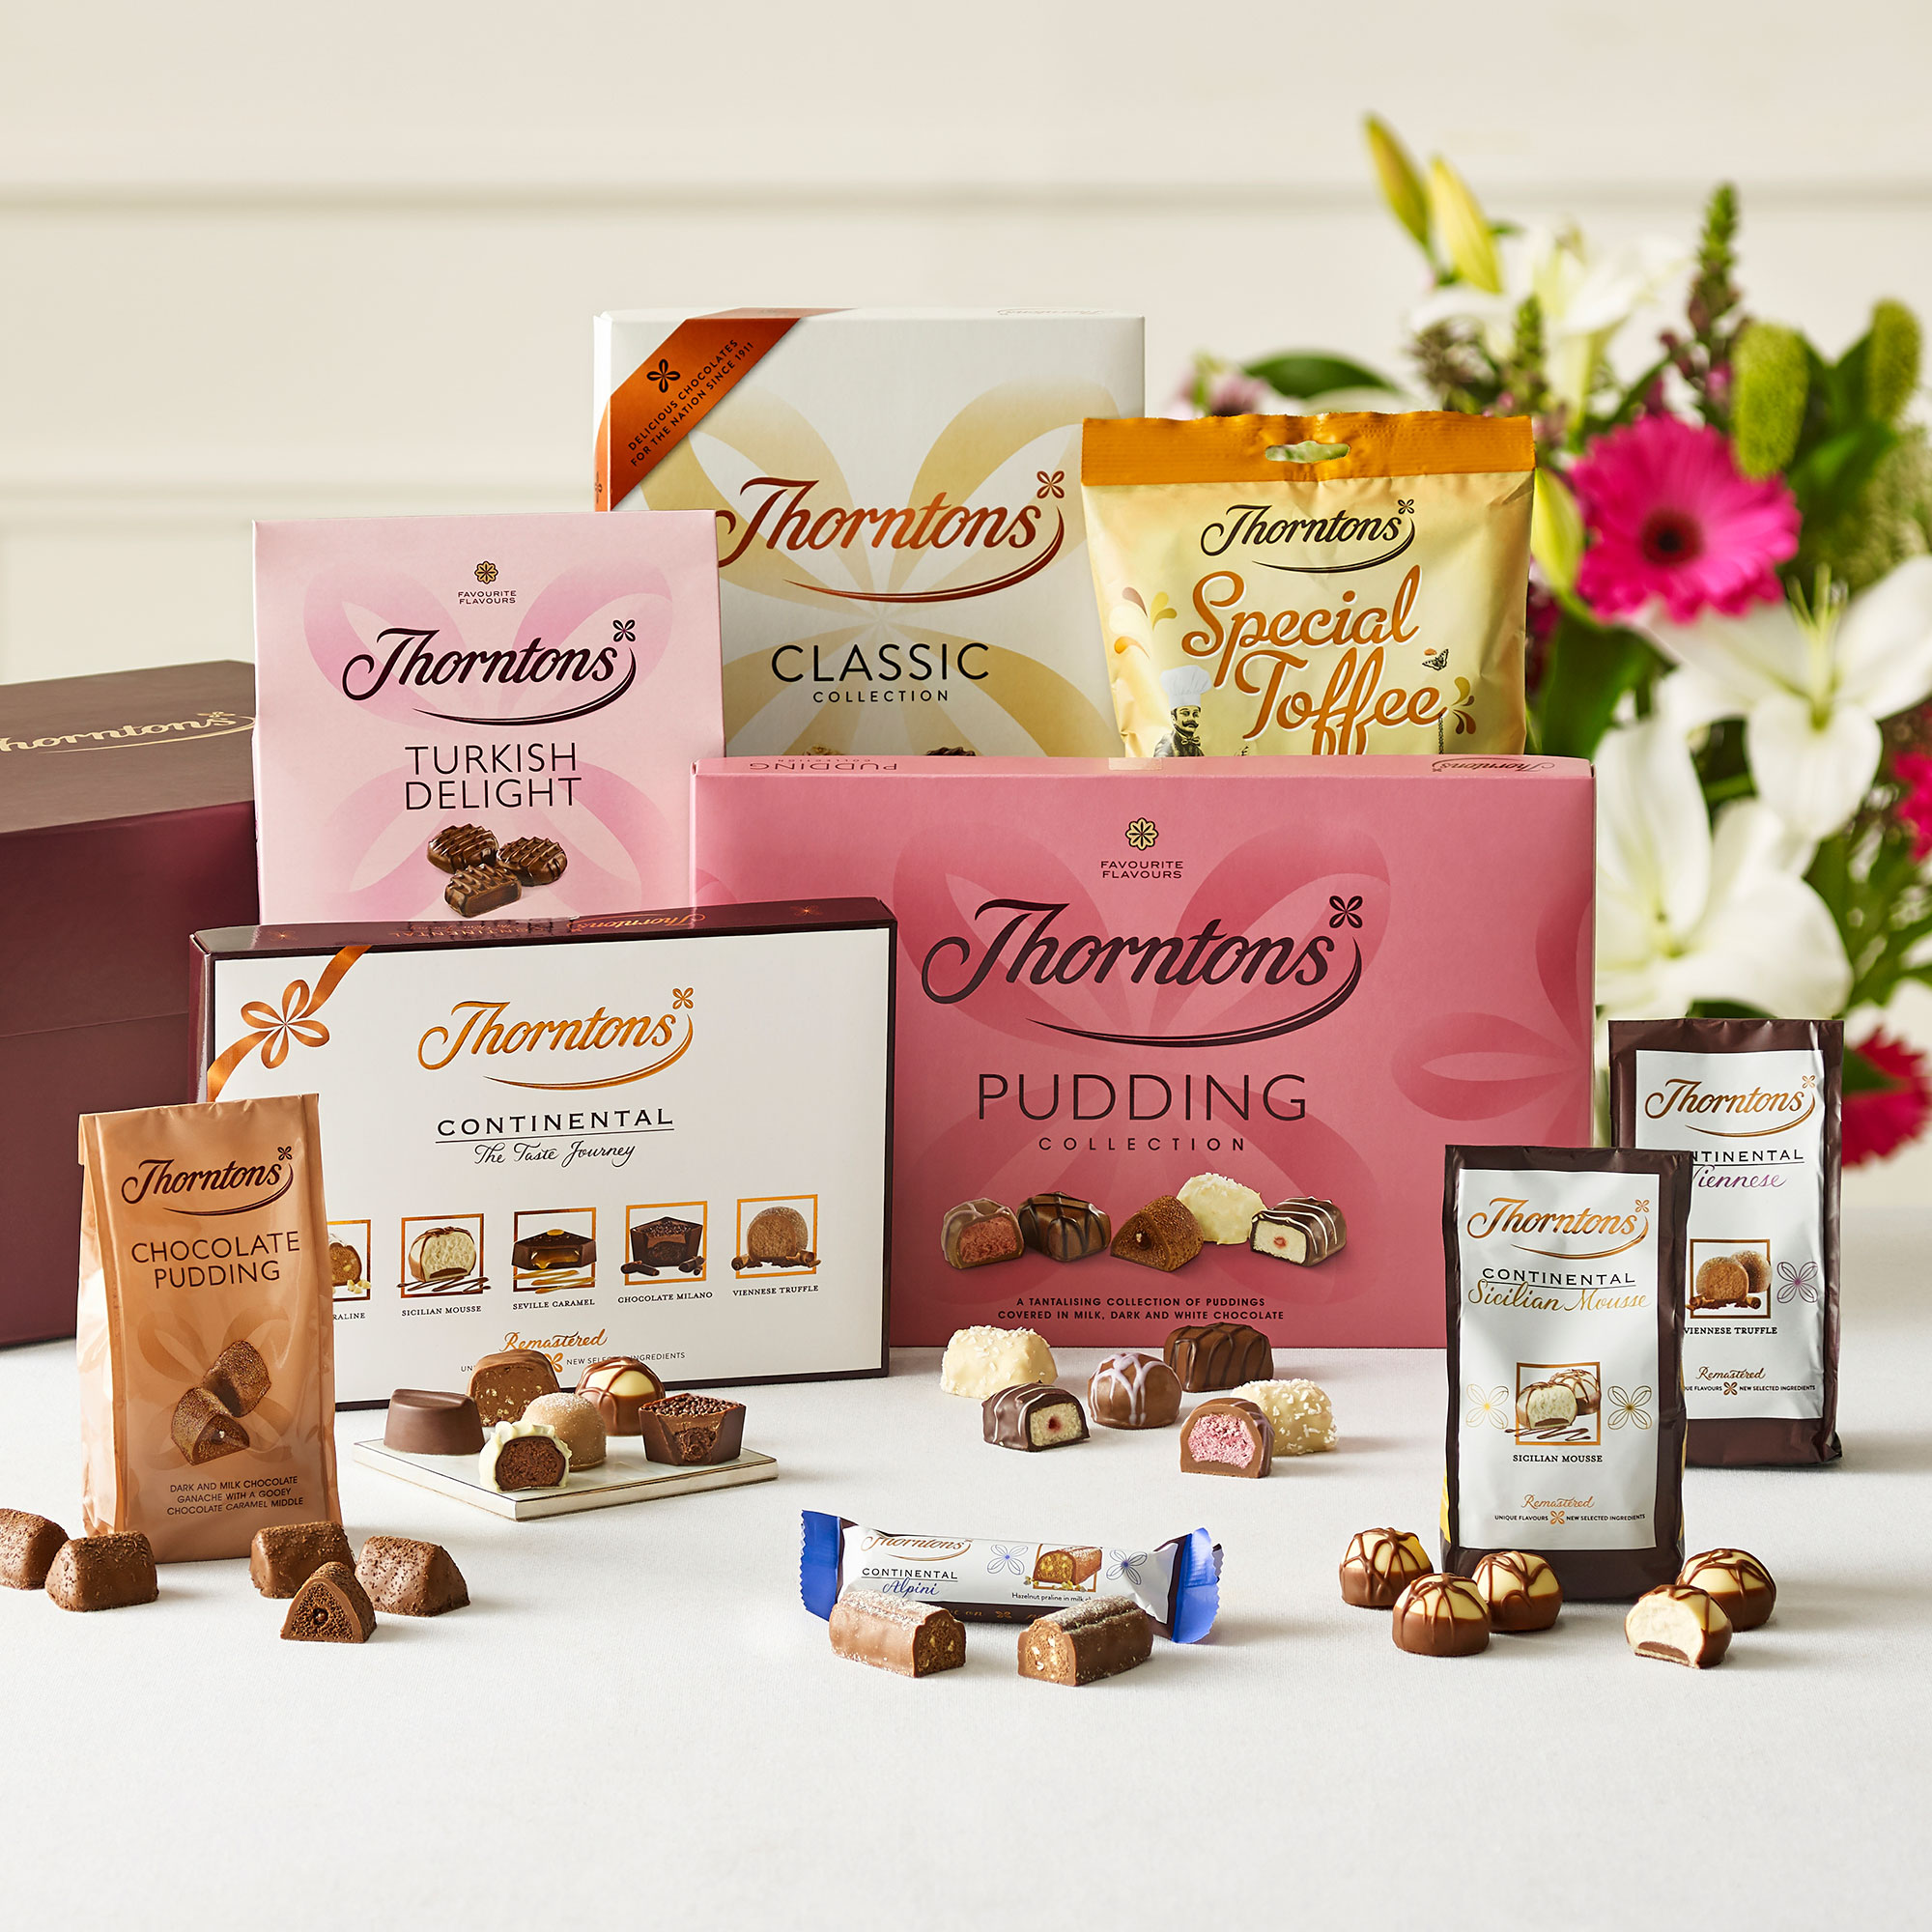 Best Sellers Chocolate Hamper Chocolate Gifts Thorntons